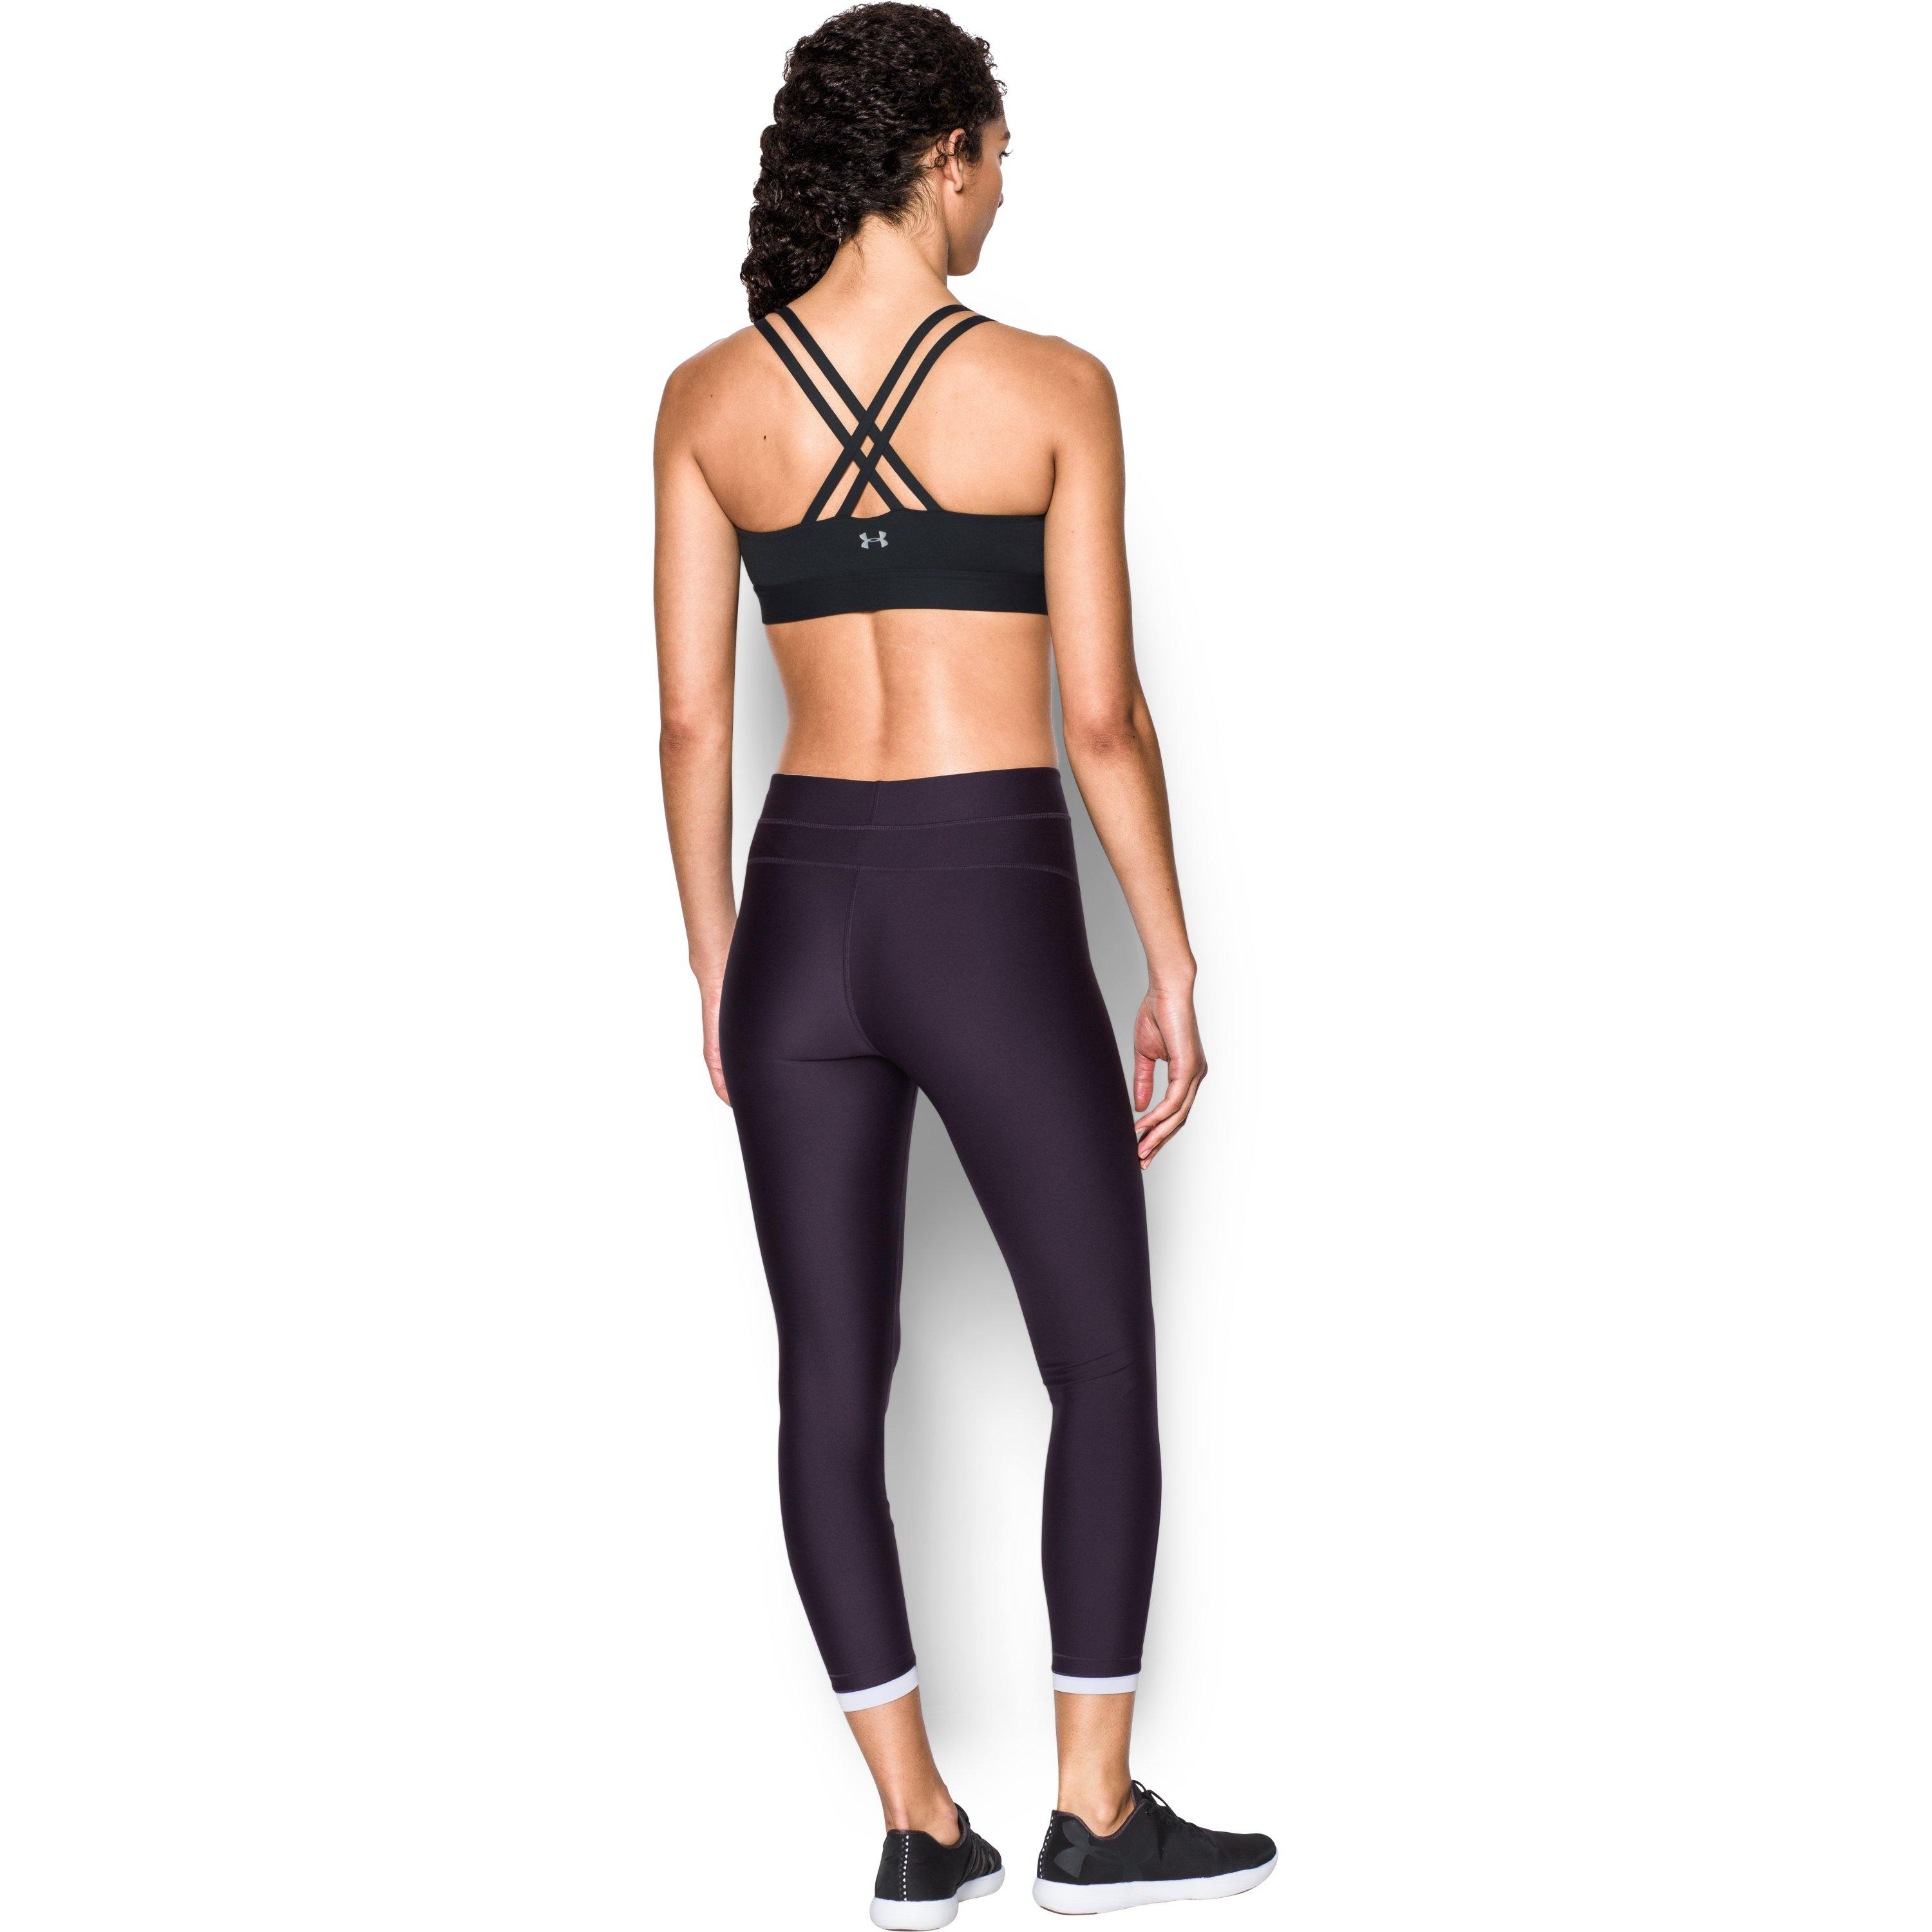 664614a22b Under Armour Women s Armour® Eclipse Low Impact Sports Bra in Black ...